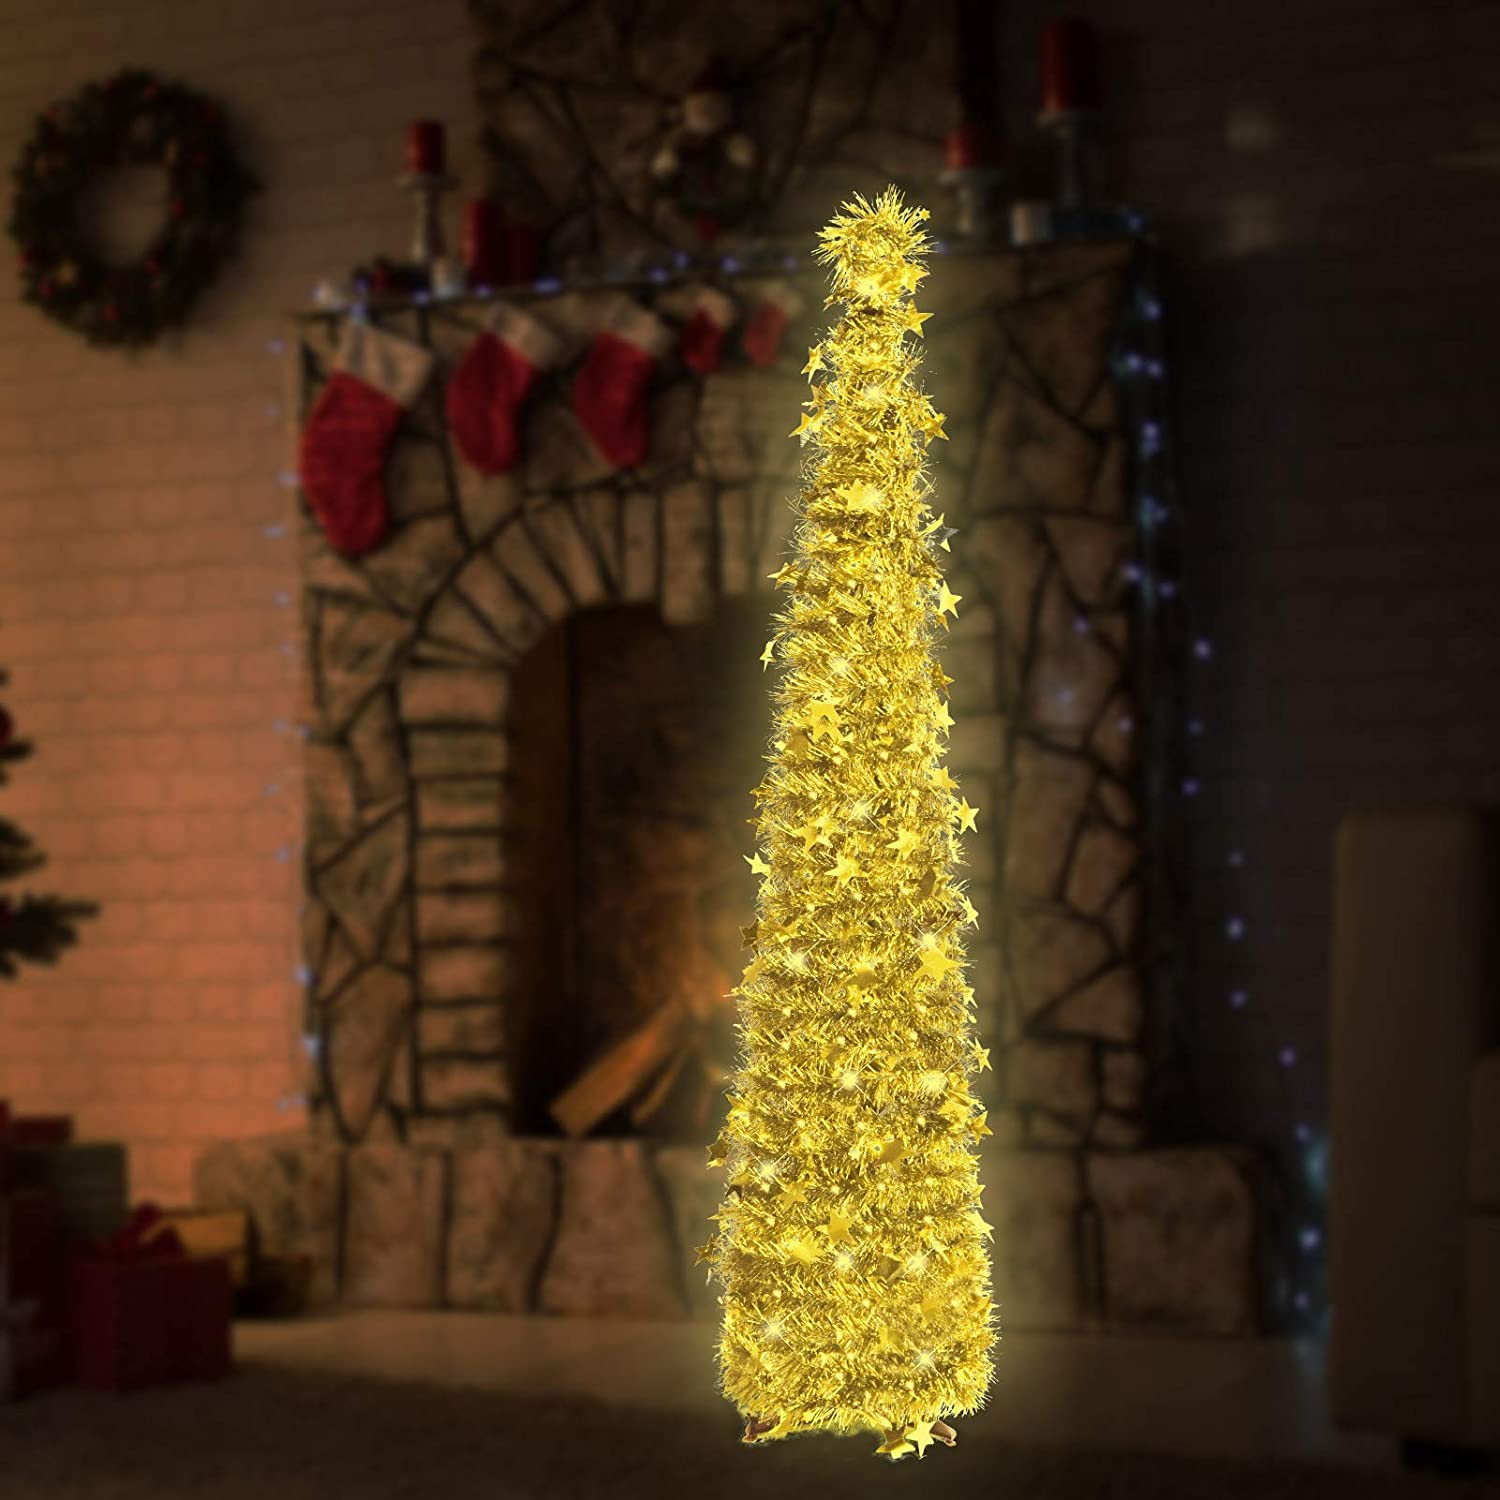 6ft Christmas Tinsel Tree with String Lights, Christmas Decorations Indoor, Pop up Christmas Tree with Stand Easy-Assembly, Big Xmas Decor for Bedrooms Office (Gold)